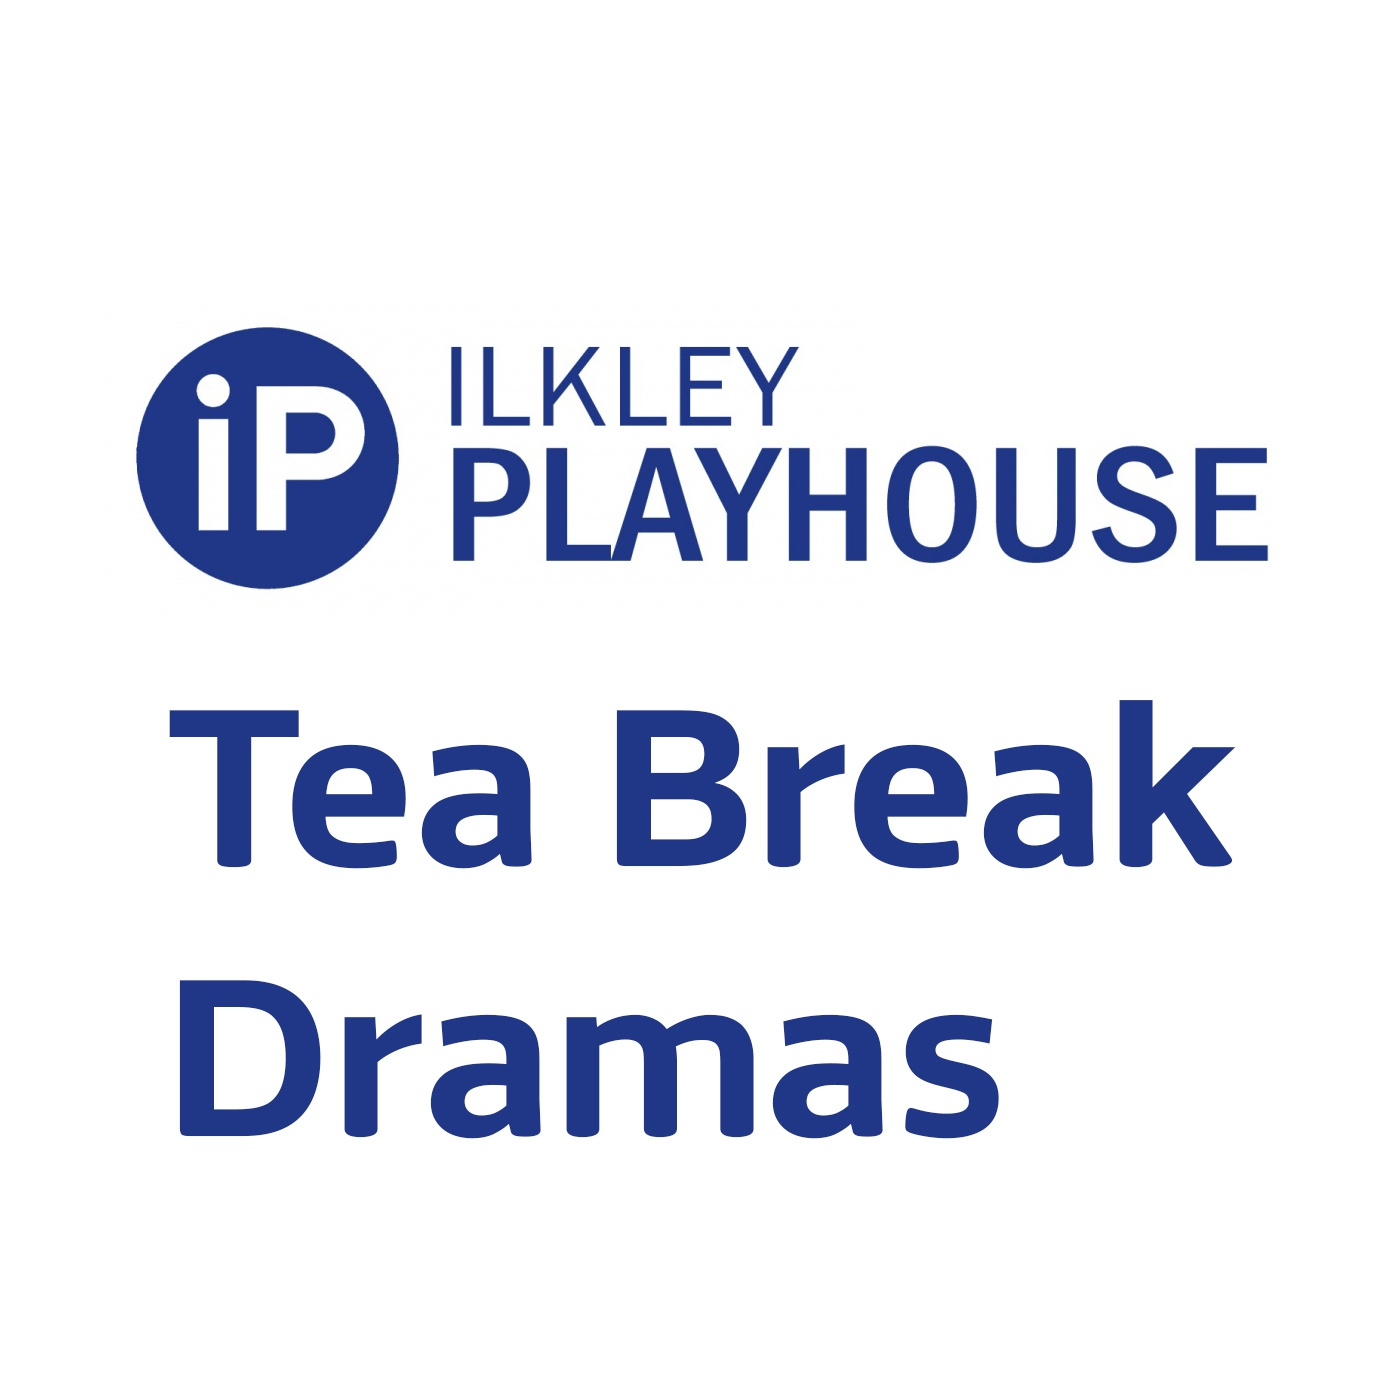 Ilkley Playhouse Tea Break Dramas